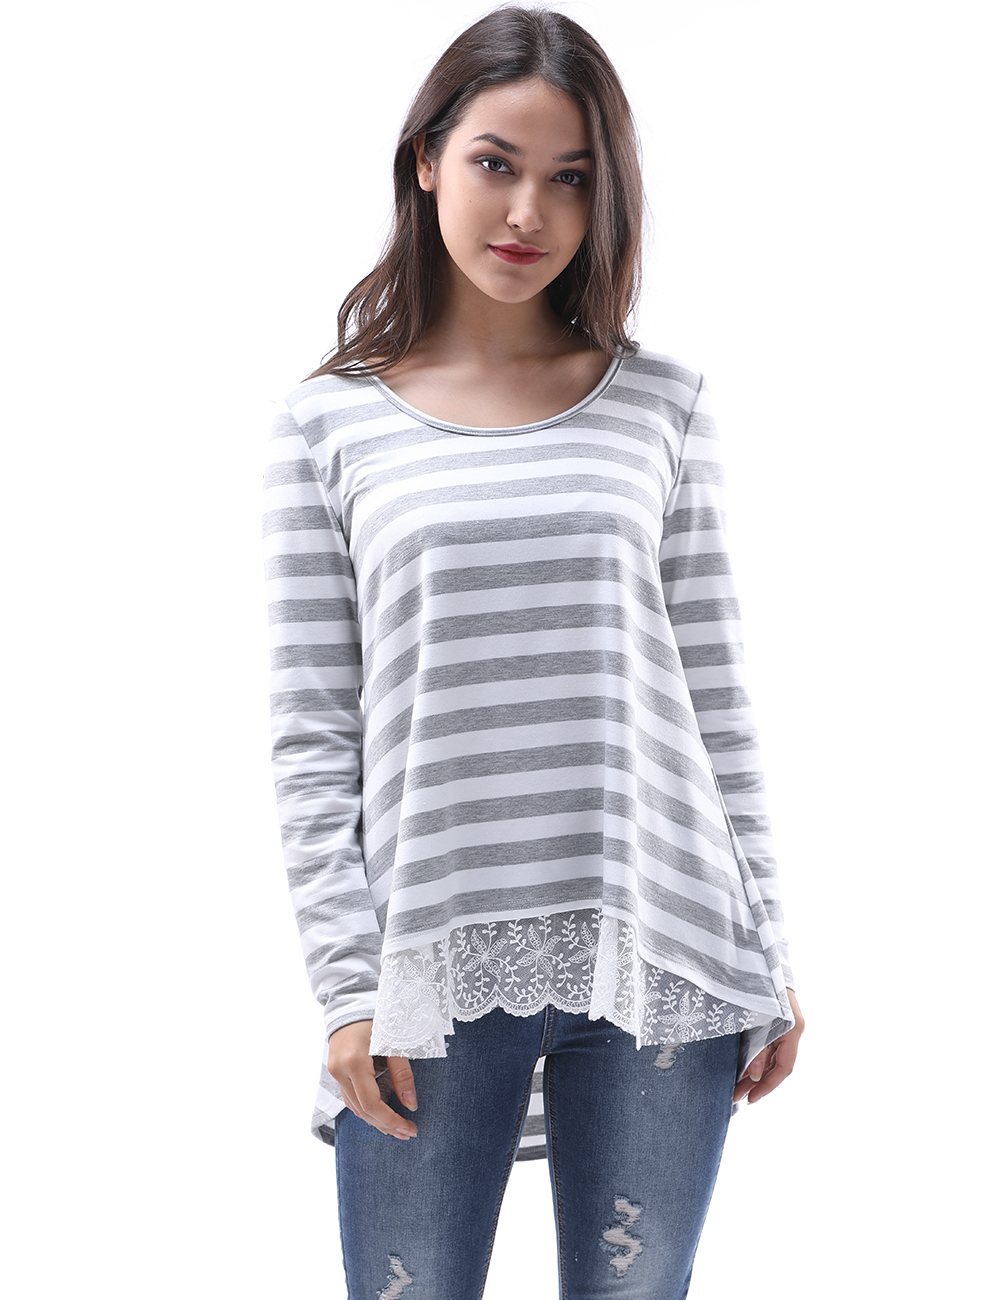 Womens Tops And Blouses 2018 Fashion Spring Lace Stripe Shirt Long Sleeve Female